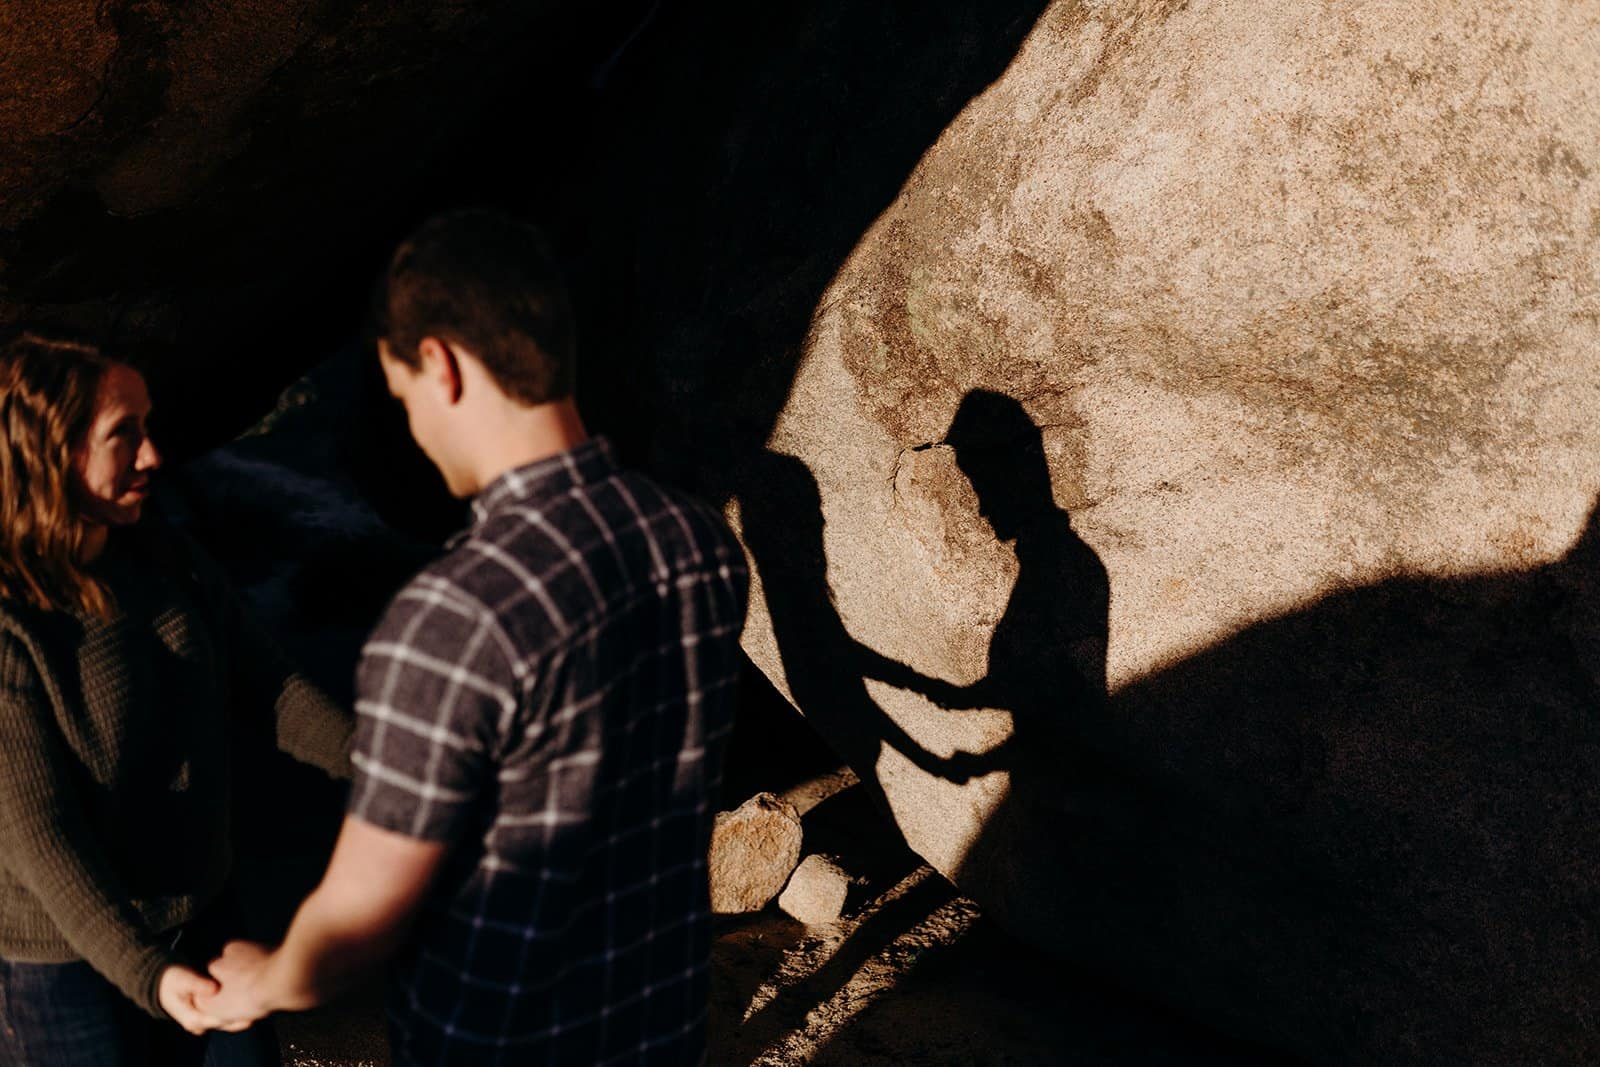 shadow of couple holding hands in Joshua Tree